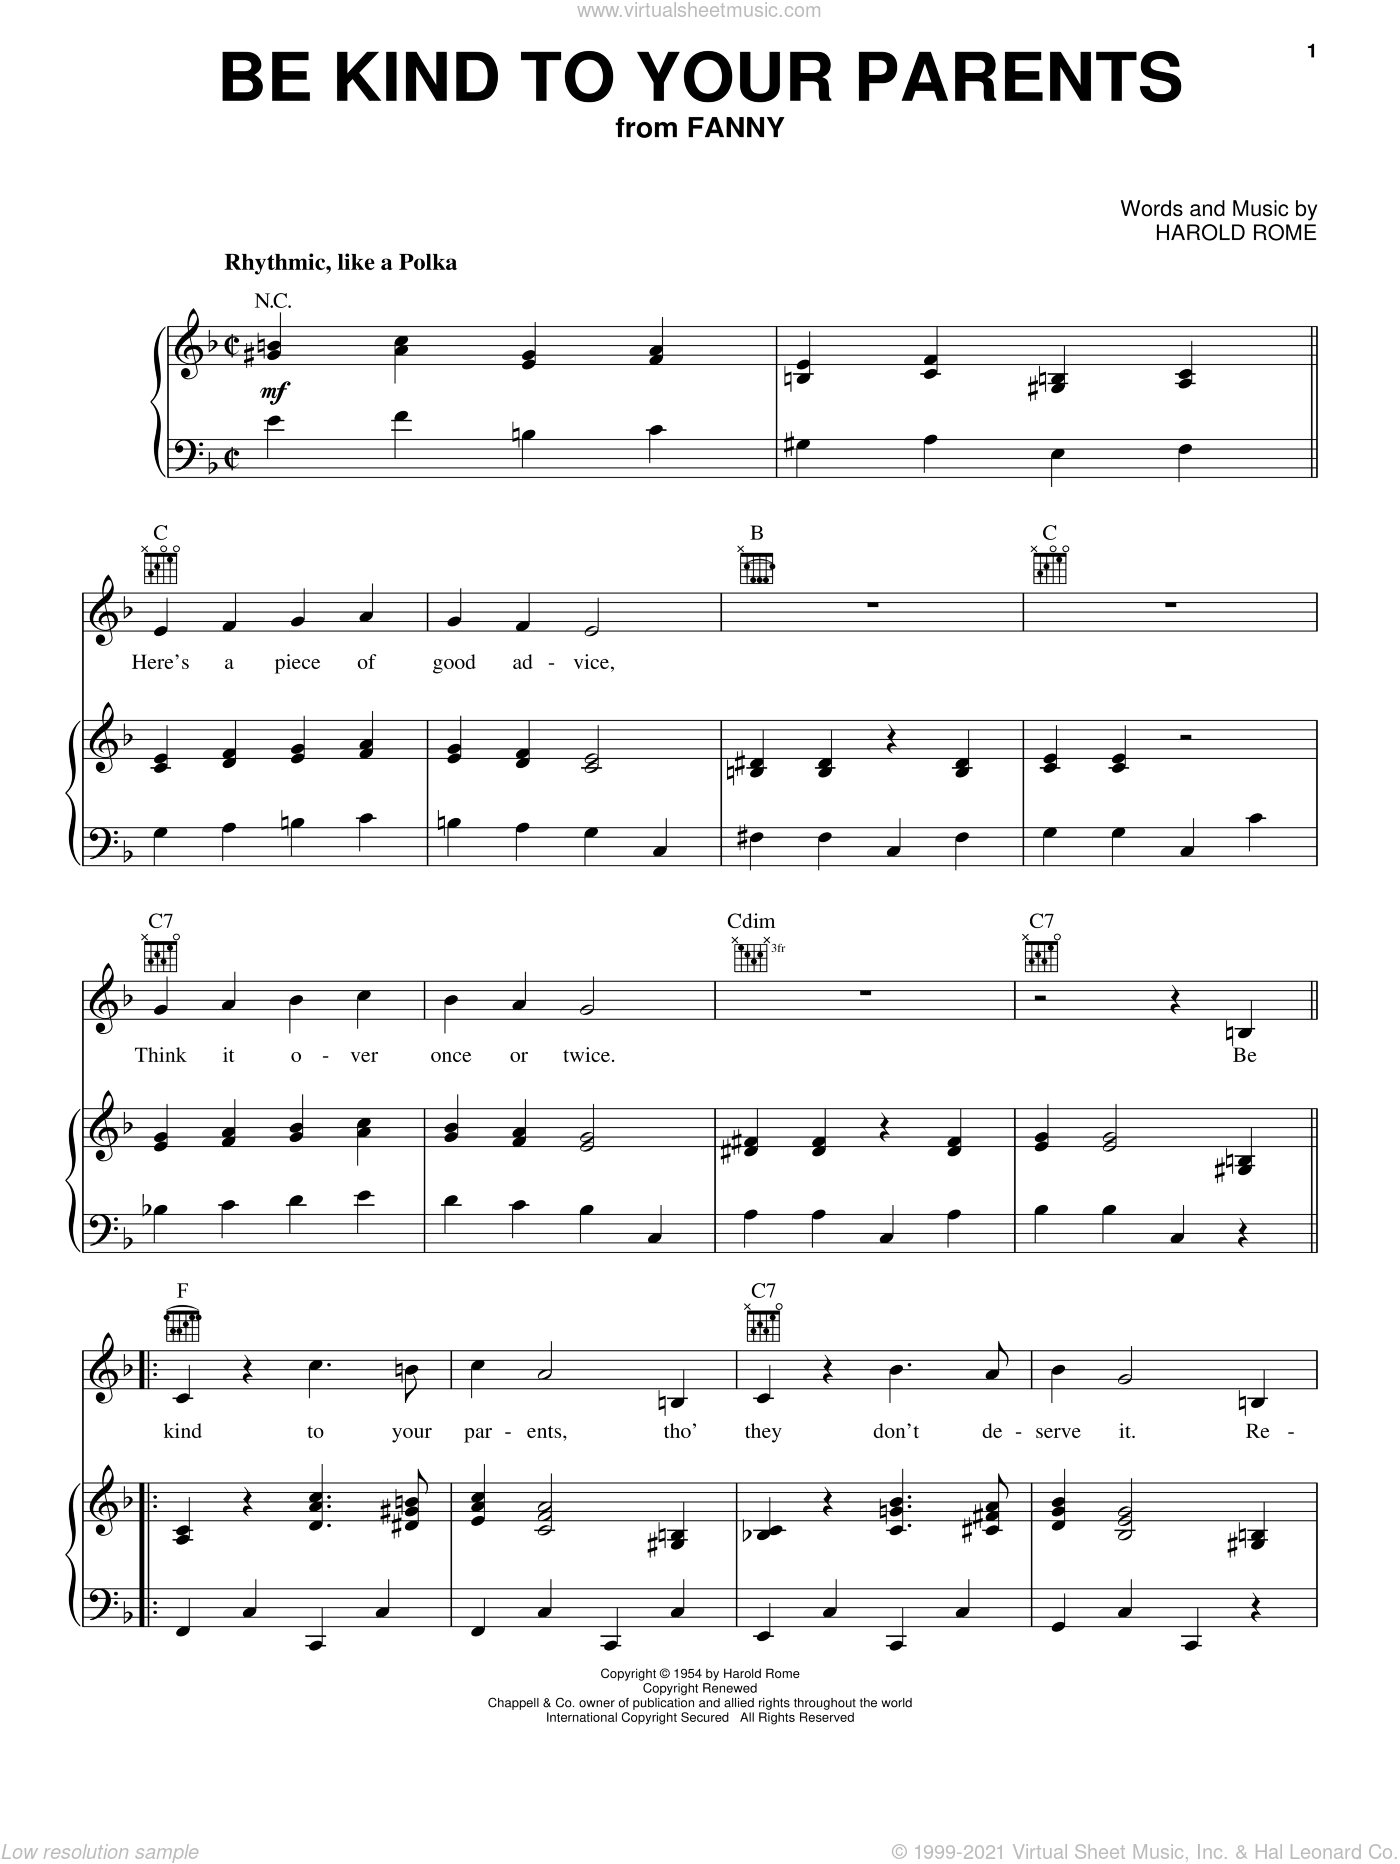 Be Kind To Your Parents sheet music for voice, piano or guitar by Harold Rome